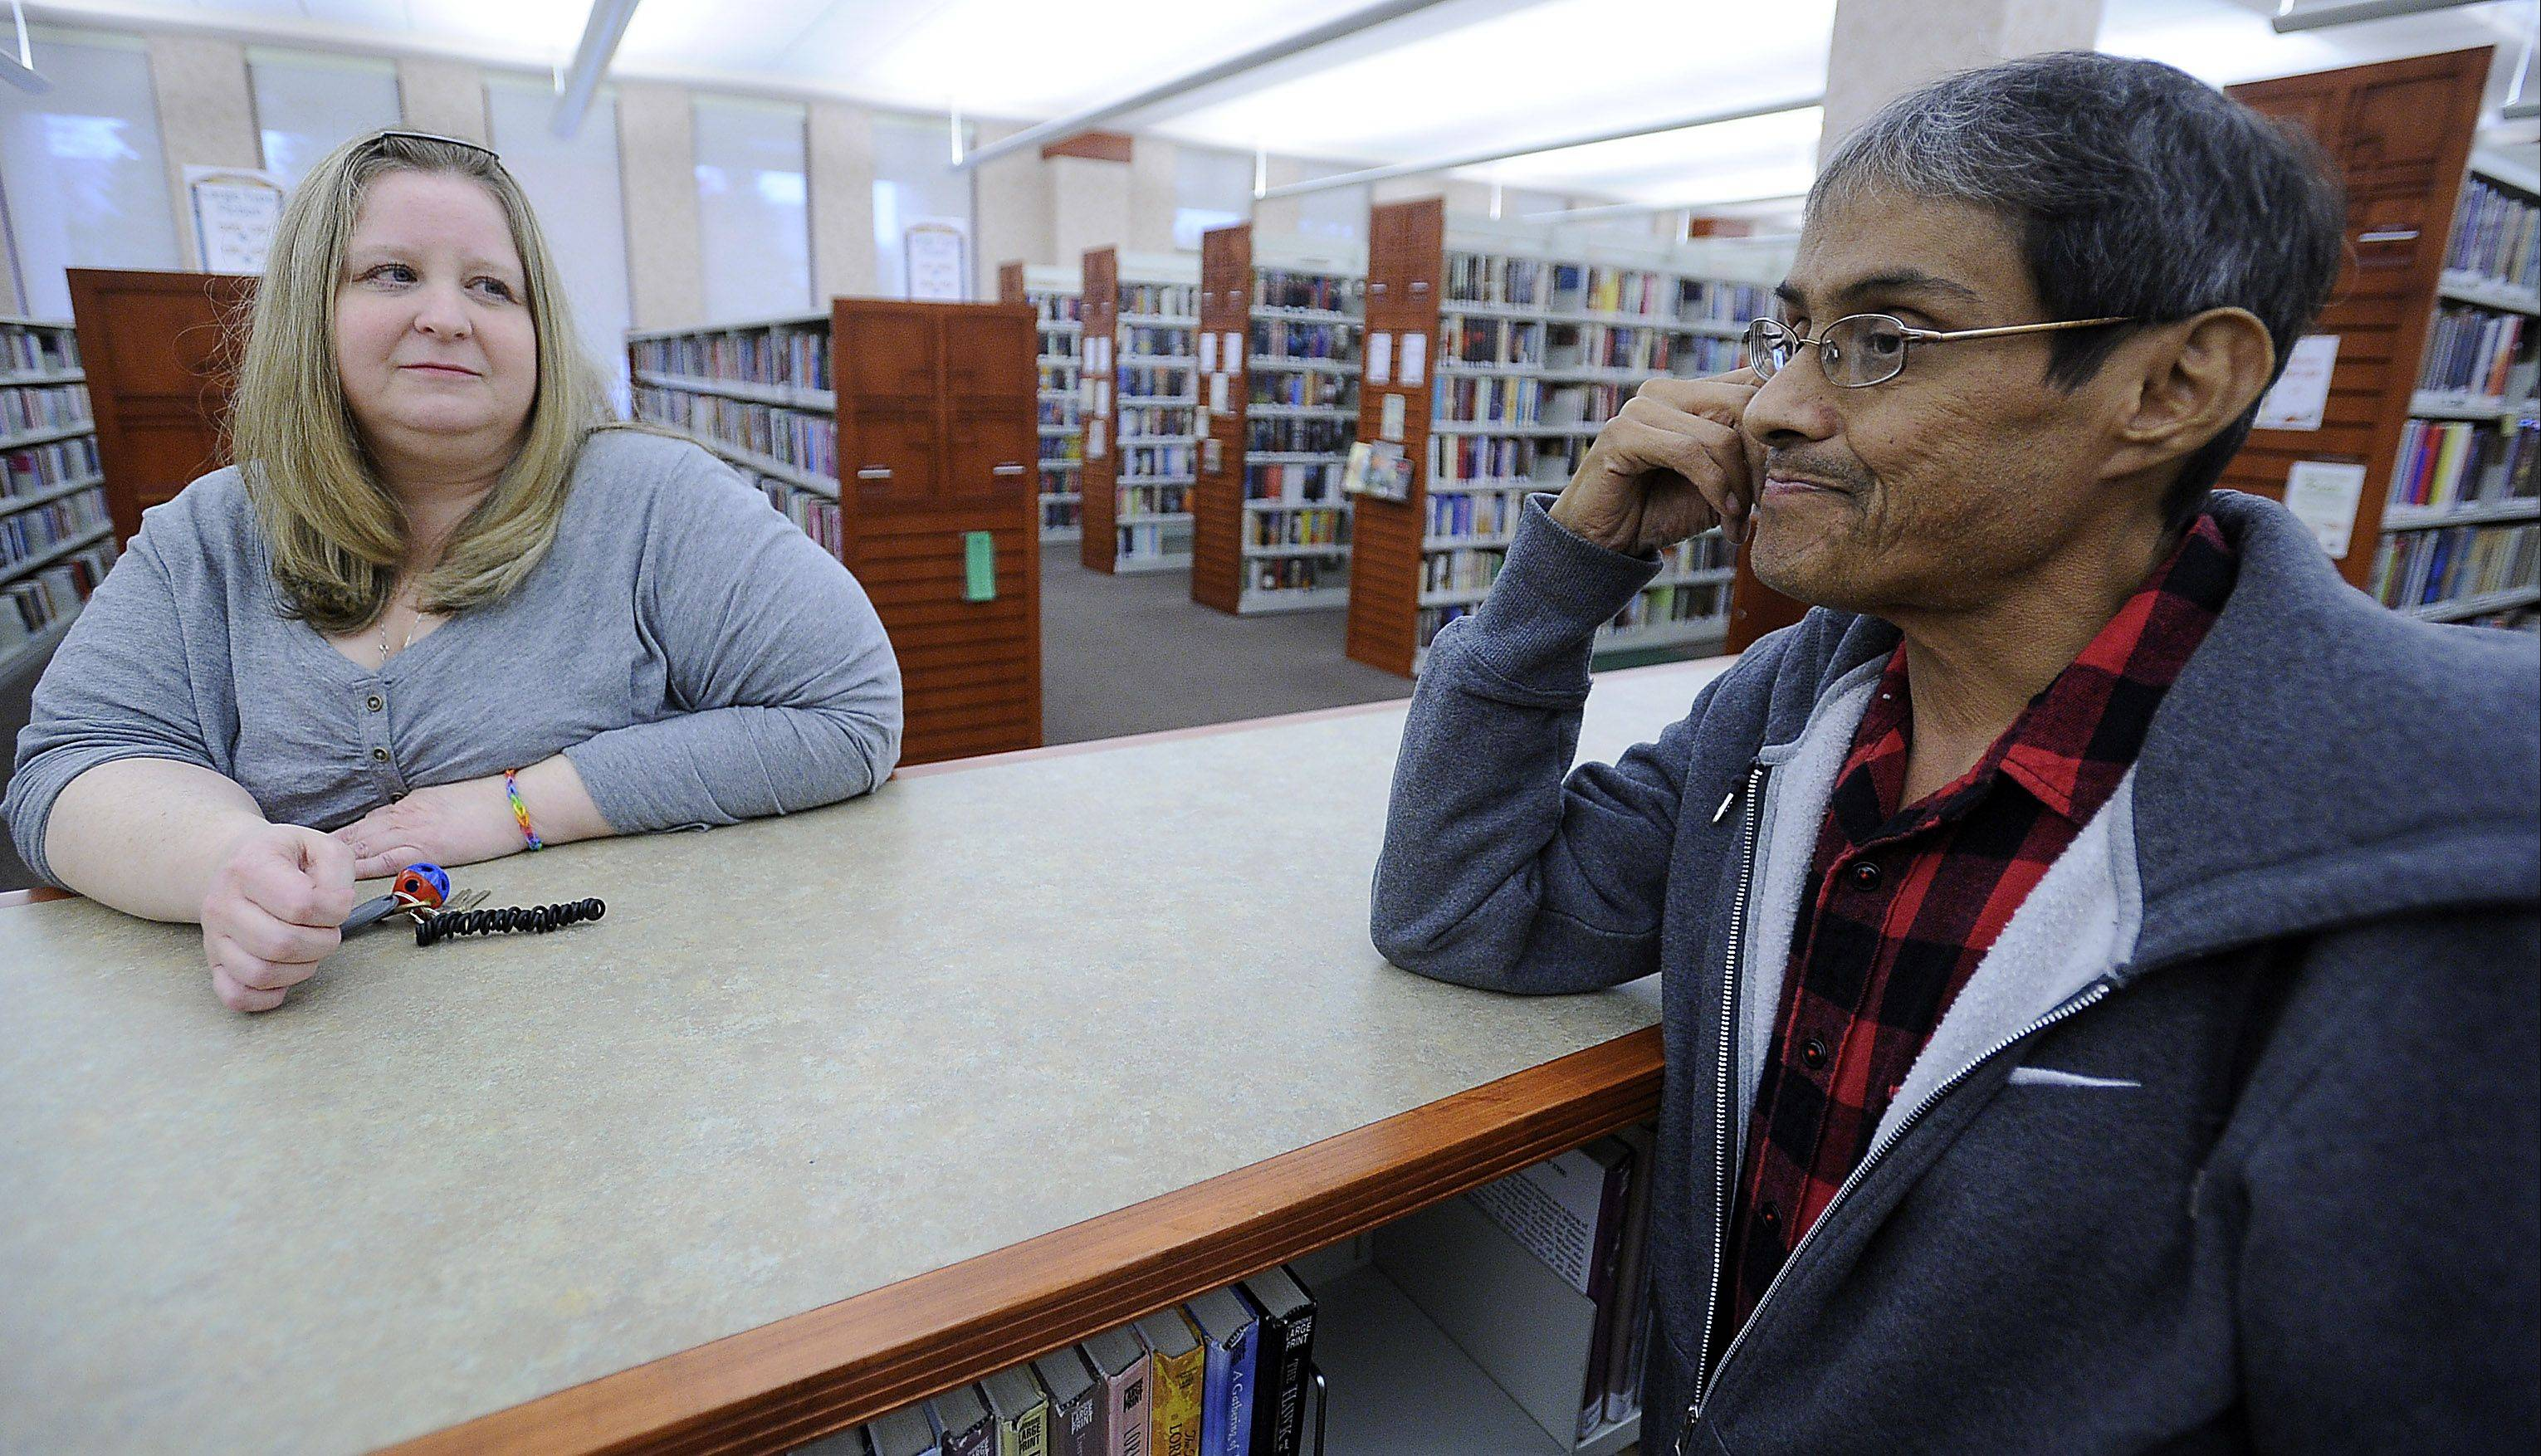 Cindy Barger, serials supervisor at the Schaumburg Township District Library, looks on as her friend and co-worker Freddie Martinez gets choked up while discussing his recent liver transplant. Barger helped Martinez through his difficult times both at home and in the hospital.